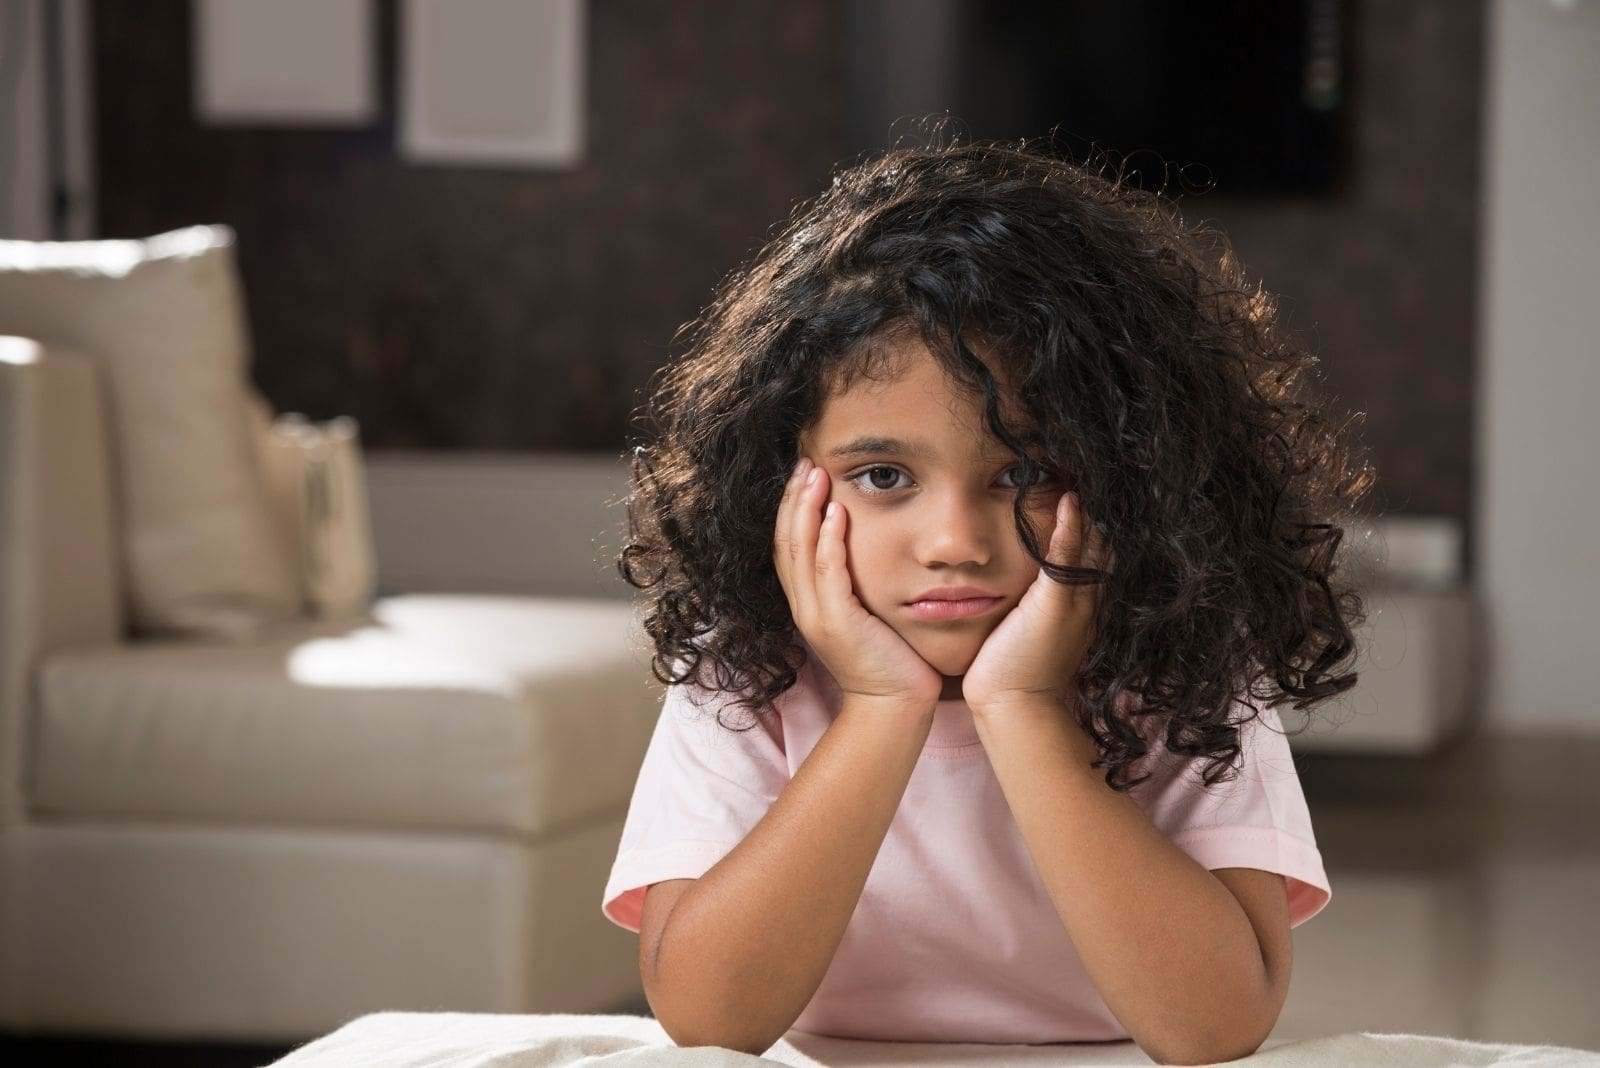 sadness in the eyes of the child looking at the camera sitting inside livingroom